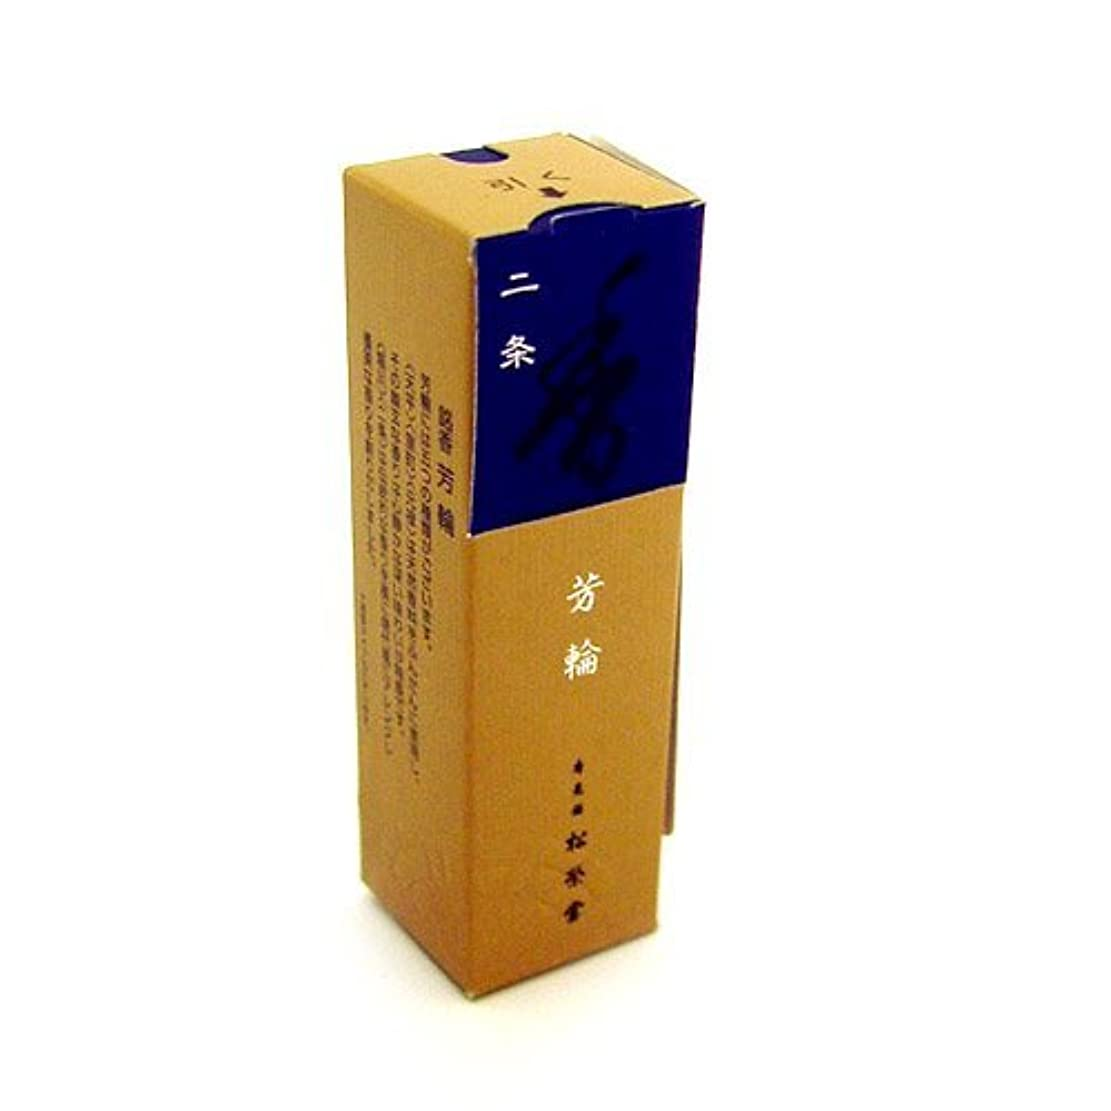 夫誤解寄り添うShoyeido – Horin Incense Sticksの別荘の街 20 Stick(s) 75120